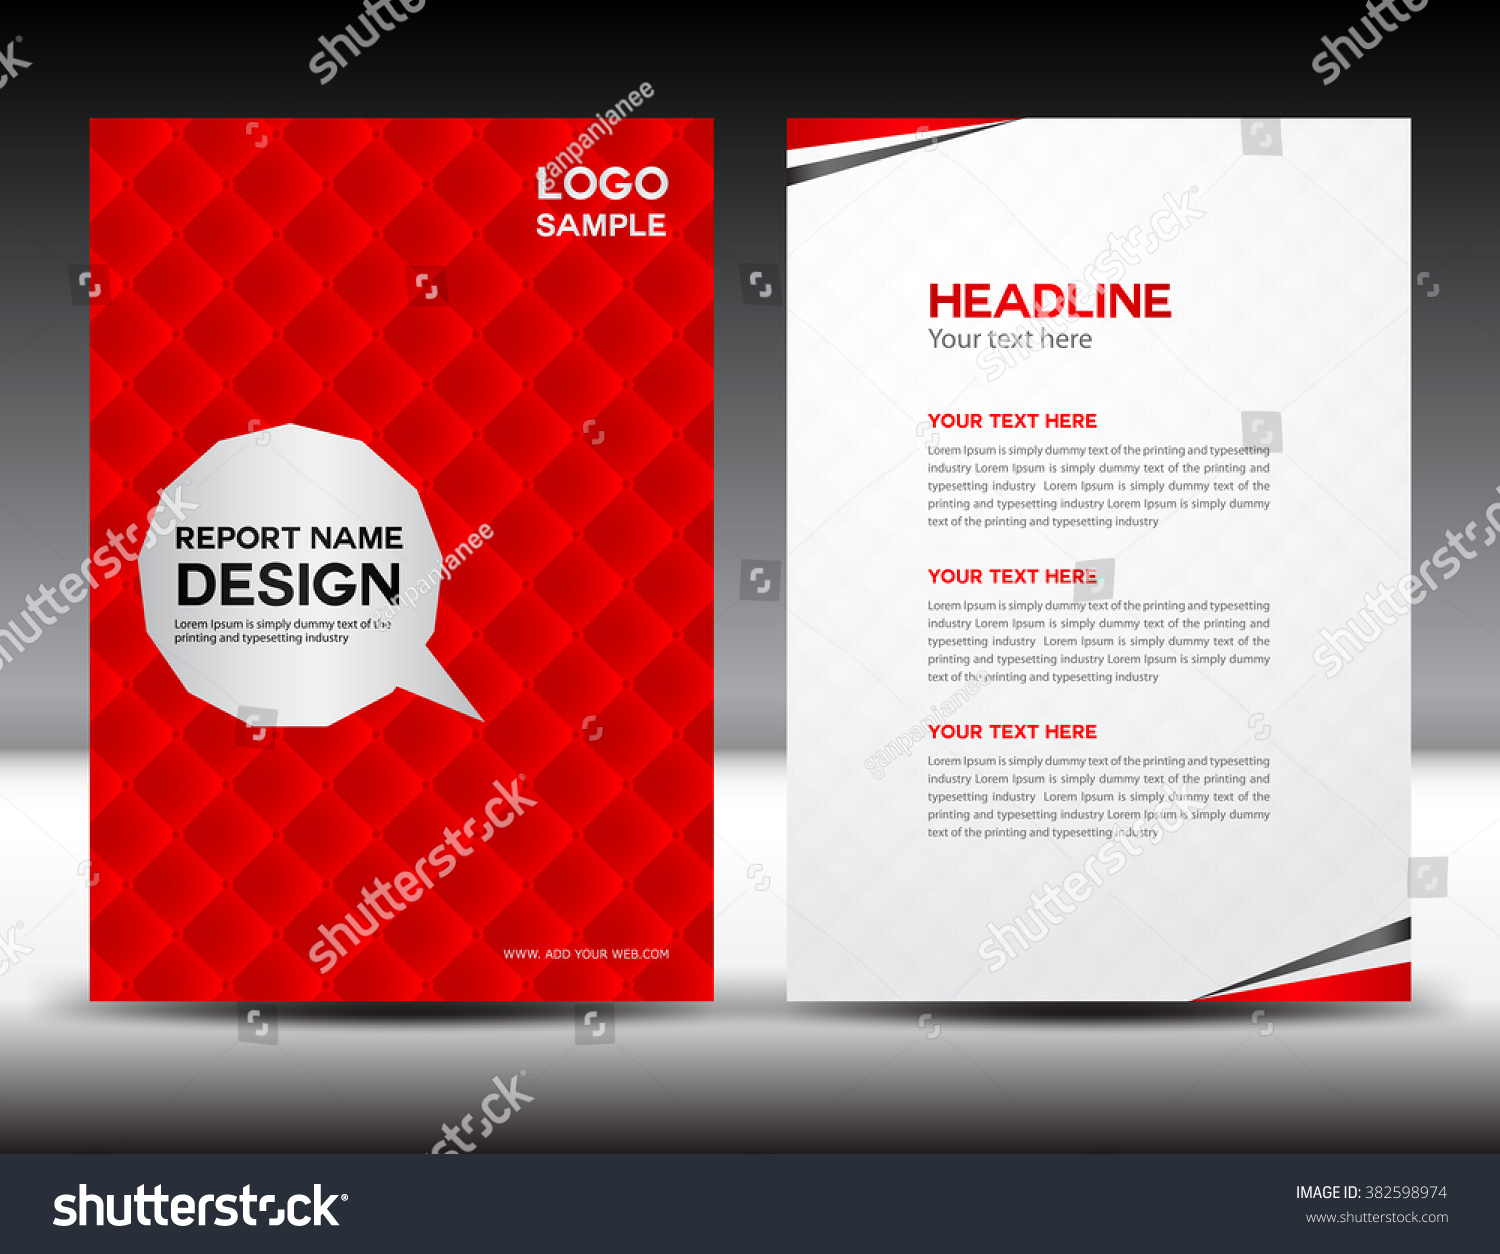 red brochure template - red annual report vector illustration cover design